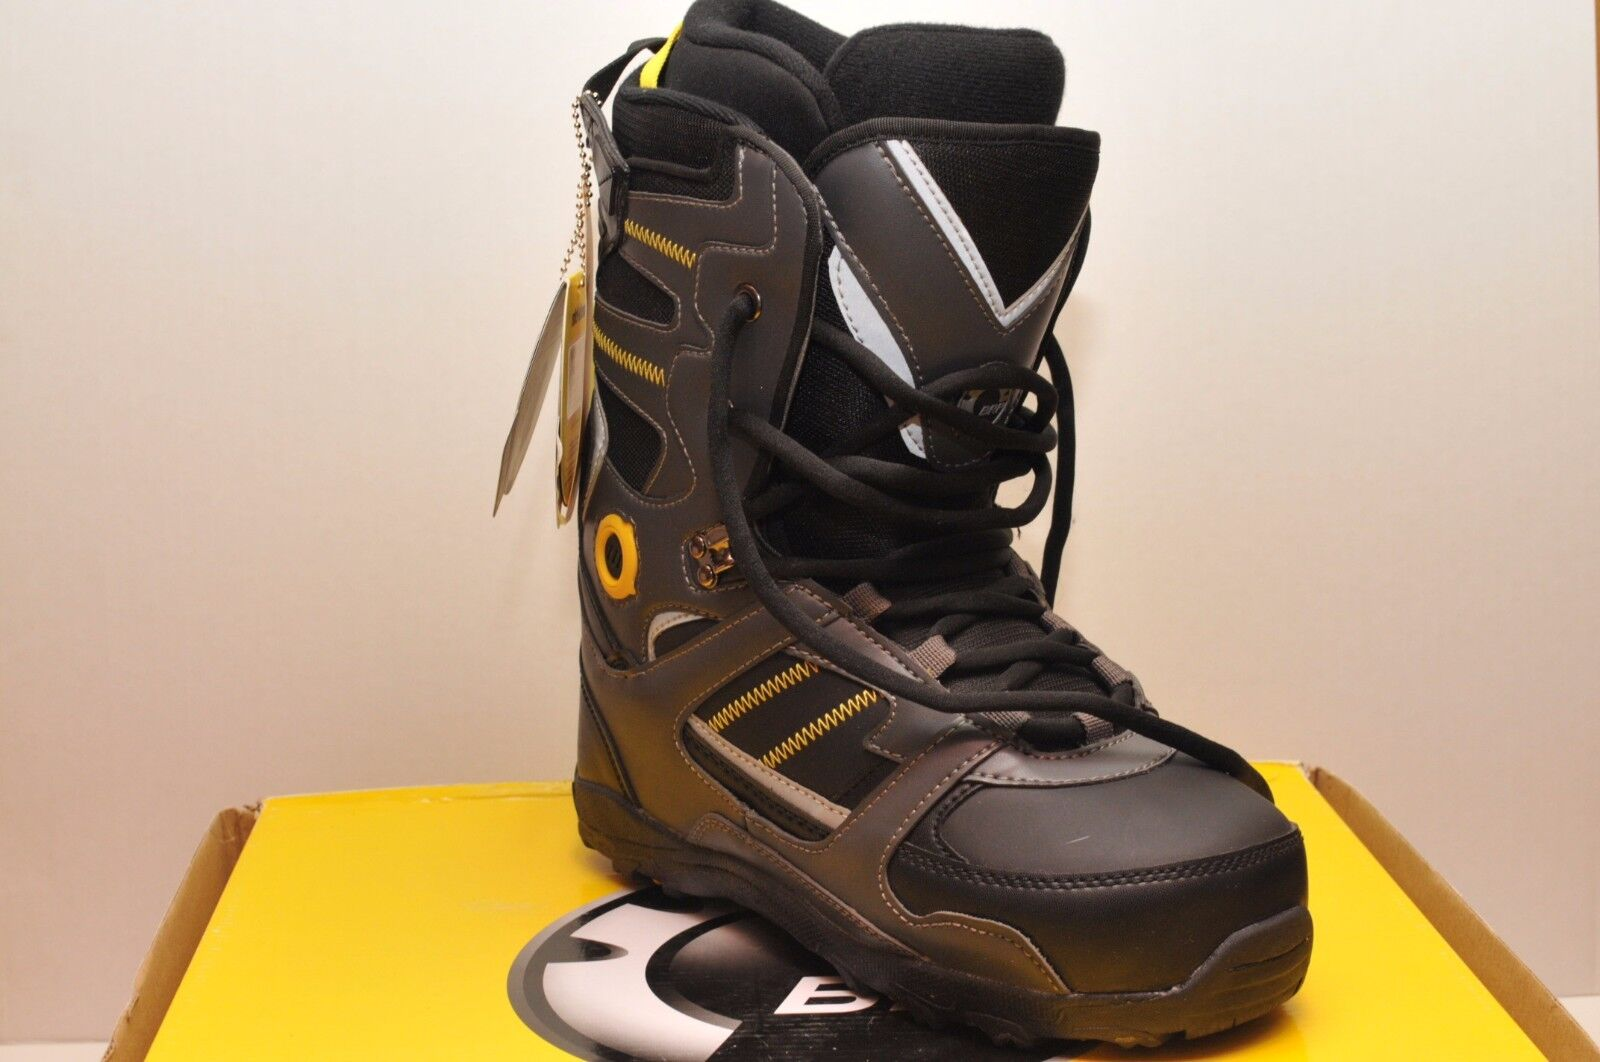 SKI-DOO HOLESHOT SNOWMOBILE BOOTS  4441652709 MEN SIZE 7 CHARCOAL YELLOW  shop online today